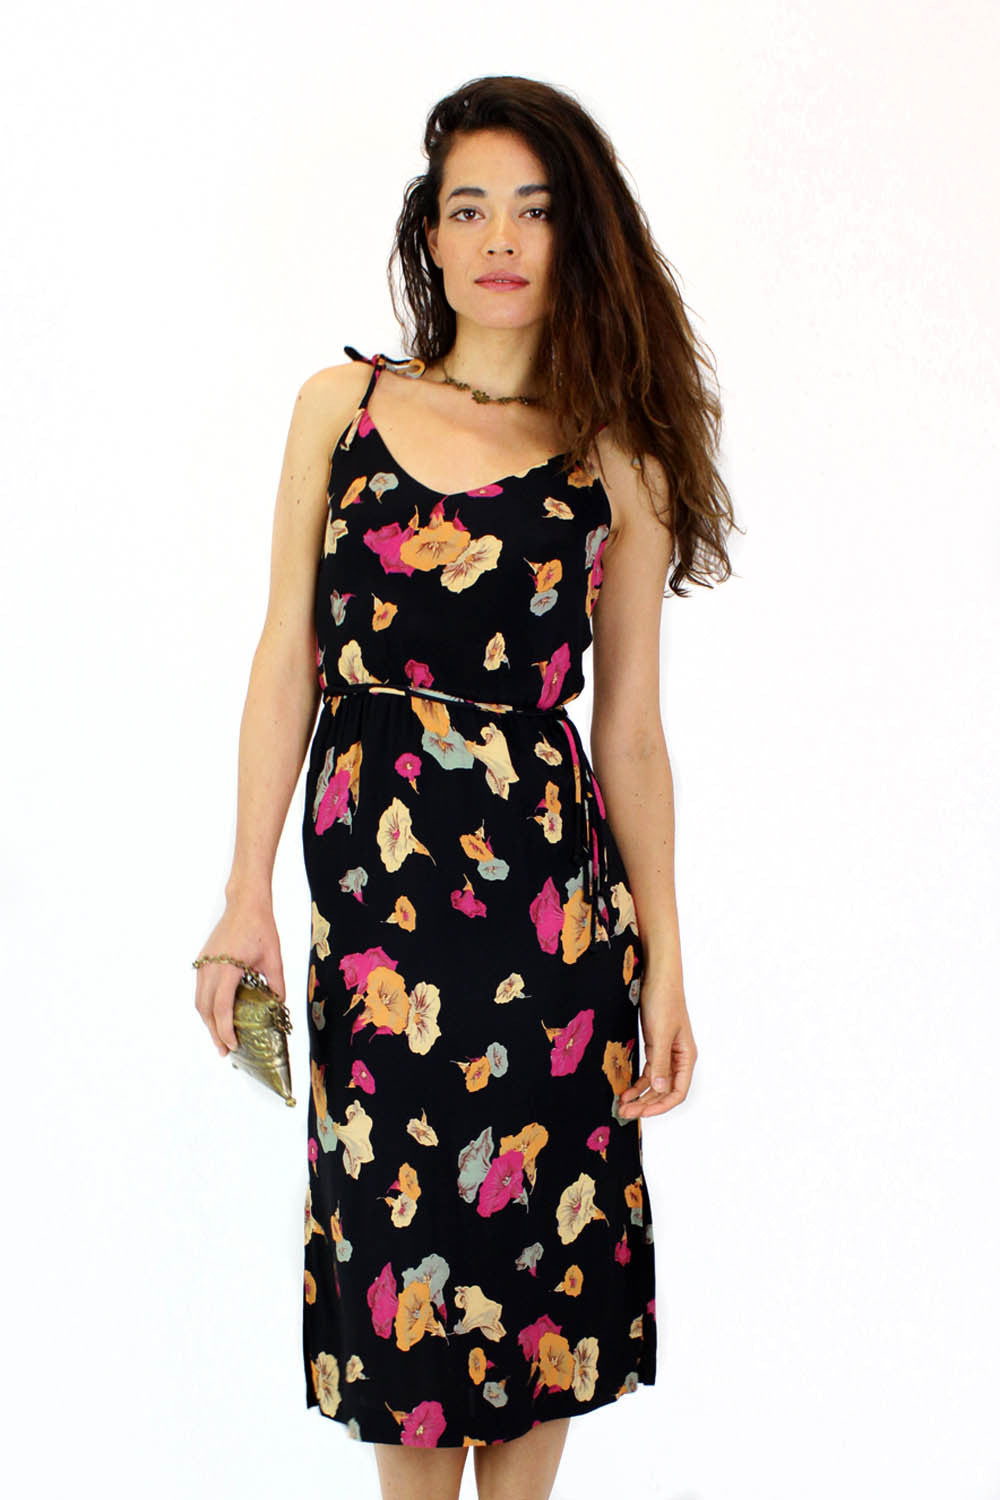 Mercurial Floral Dress S/M